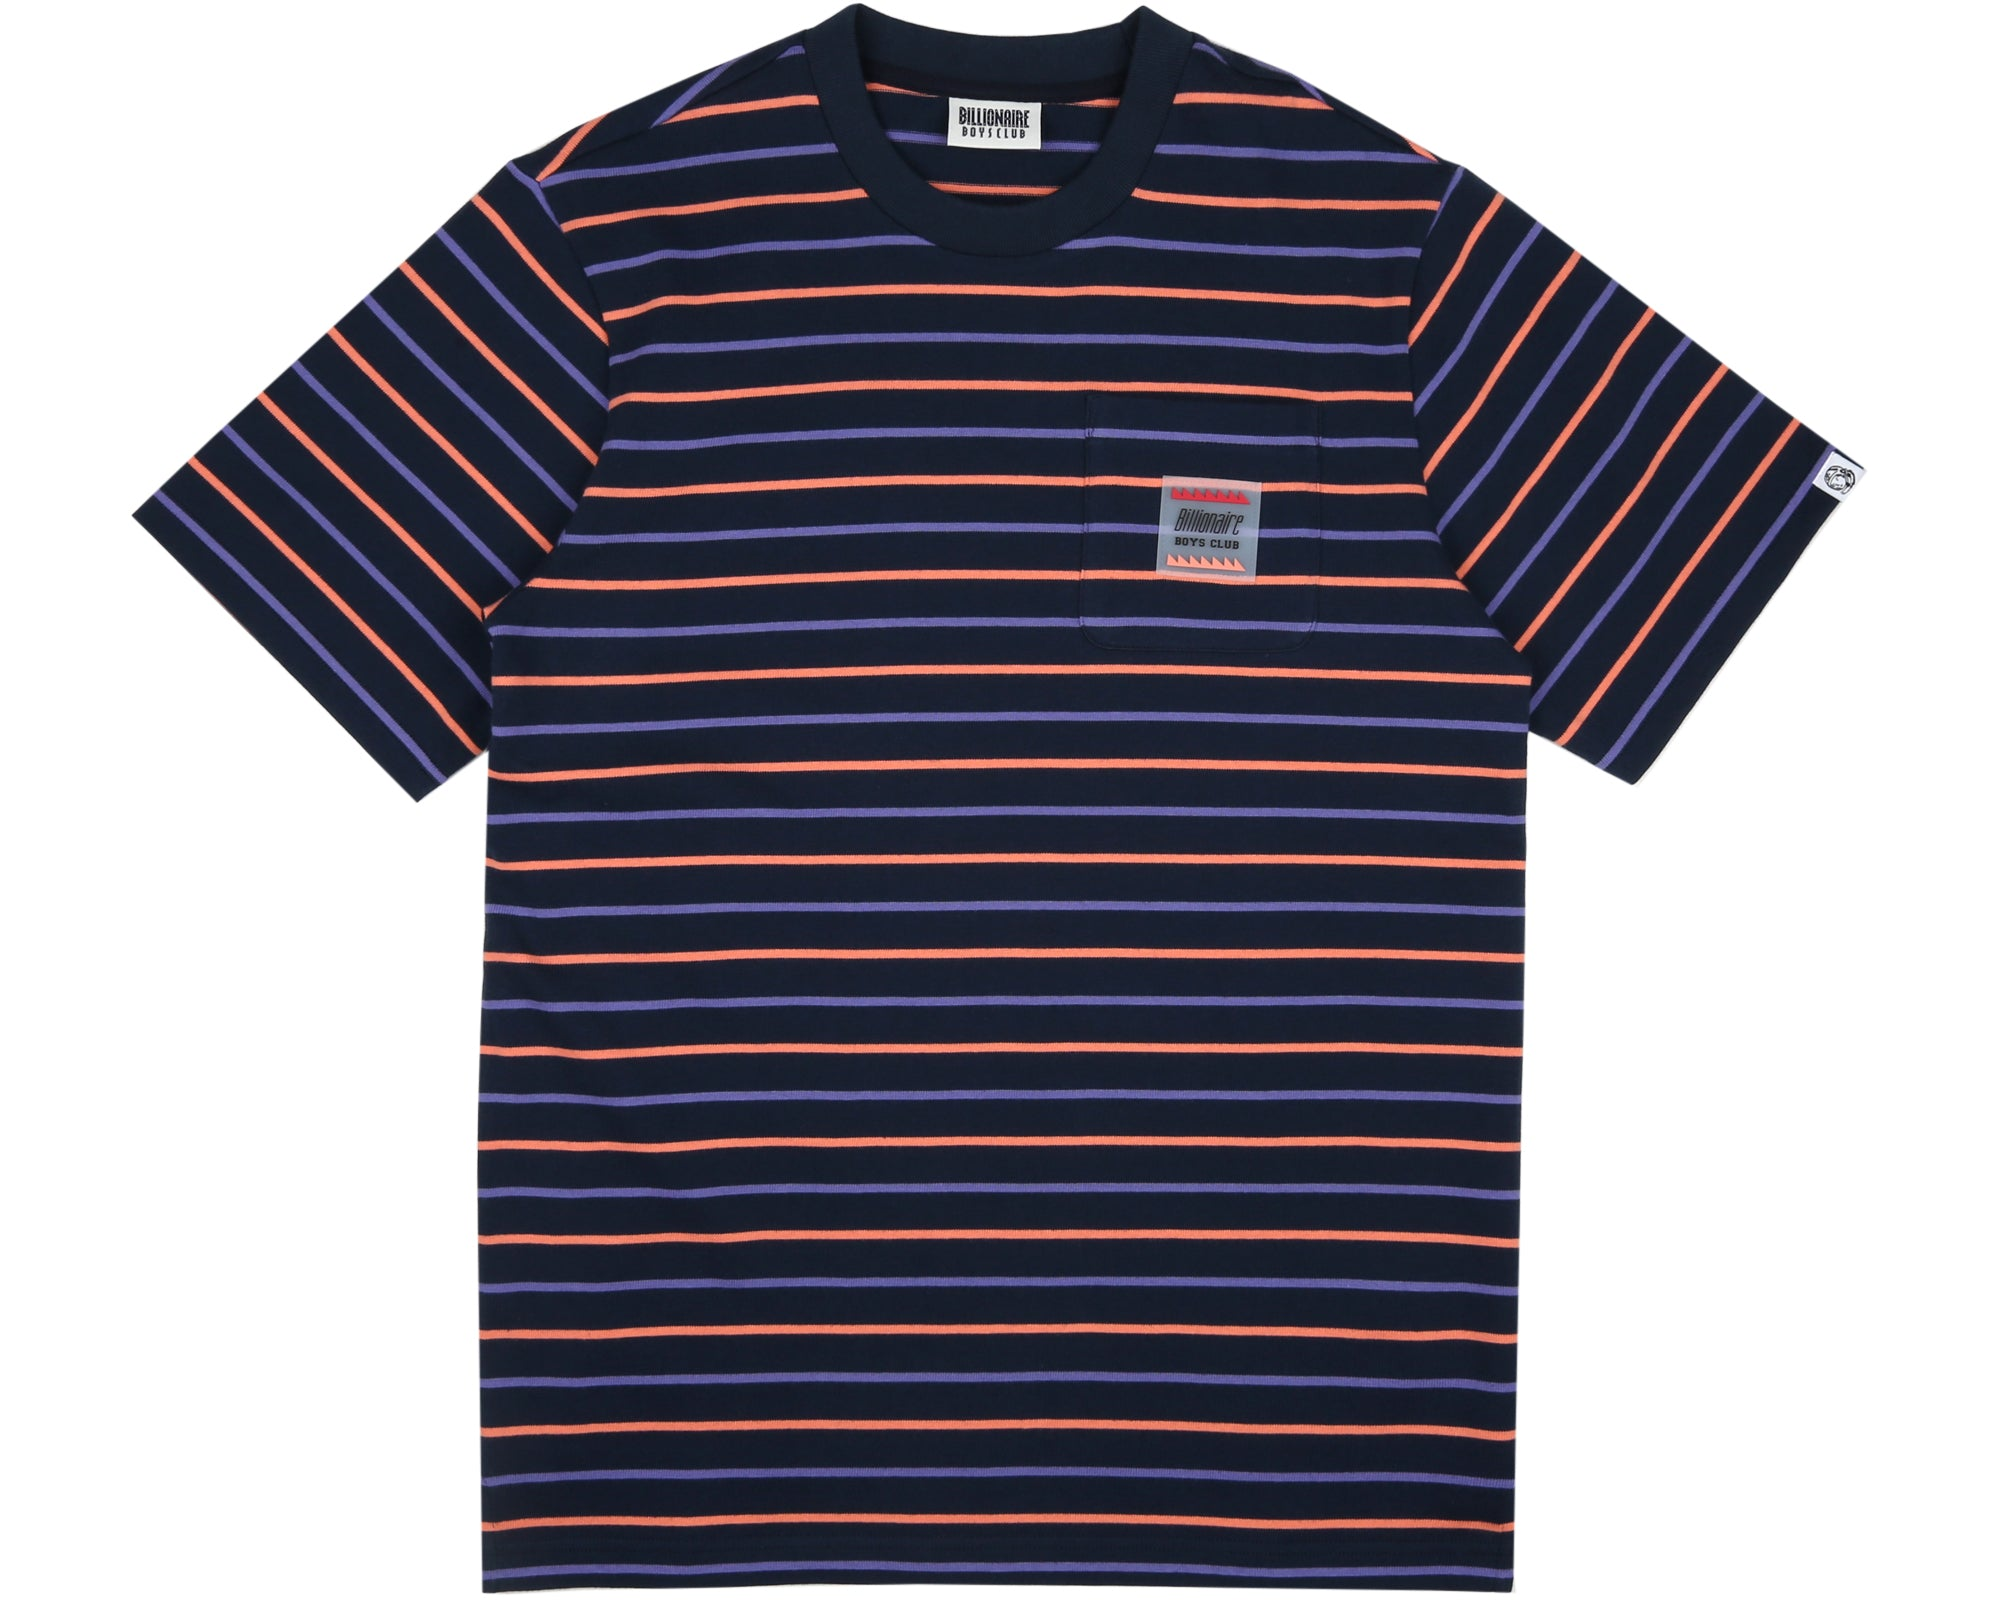 WOVEN STRIPE POCKET T-SHIRT - NAVY